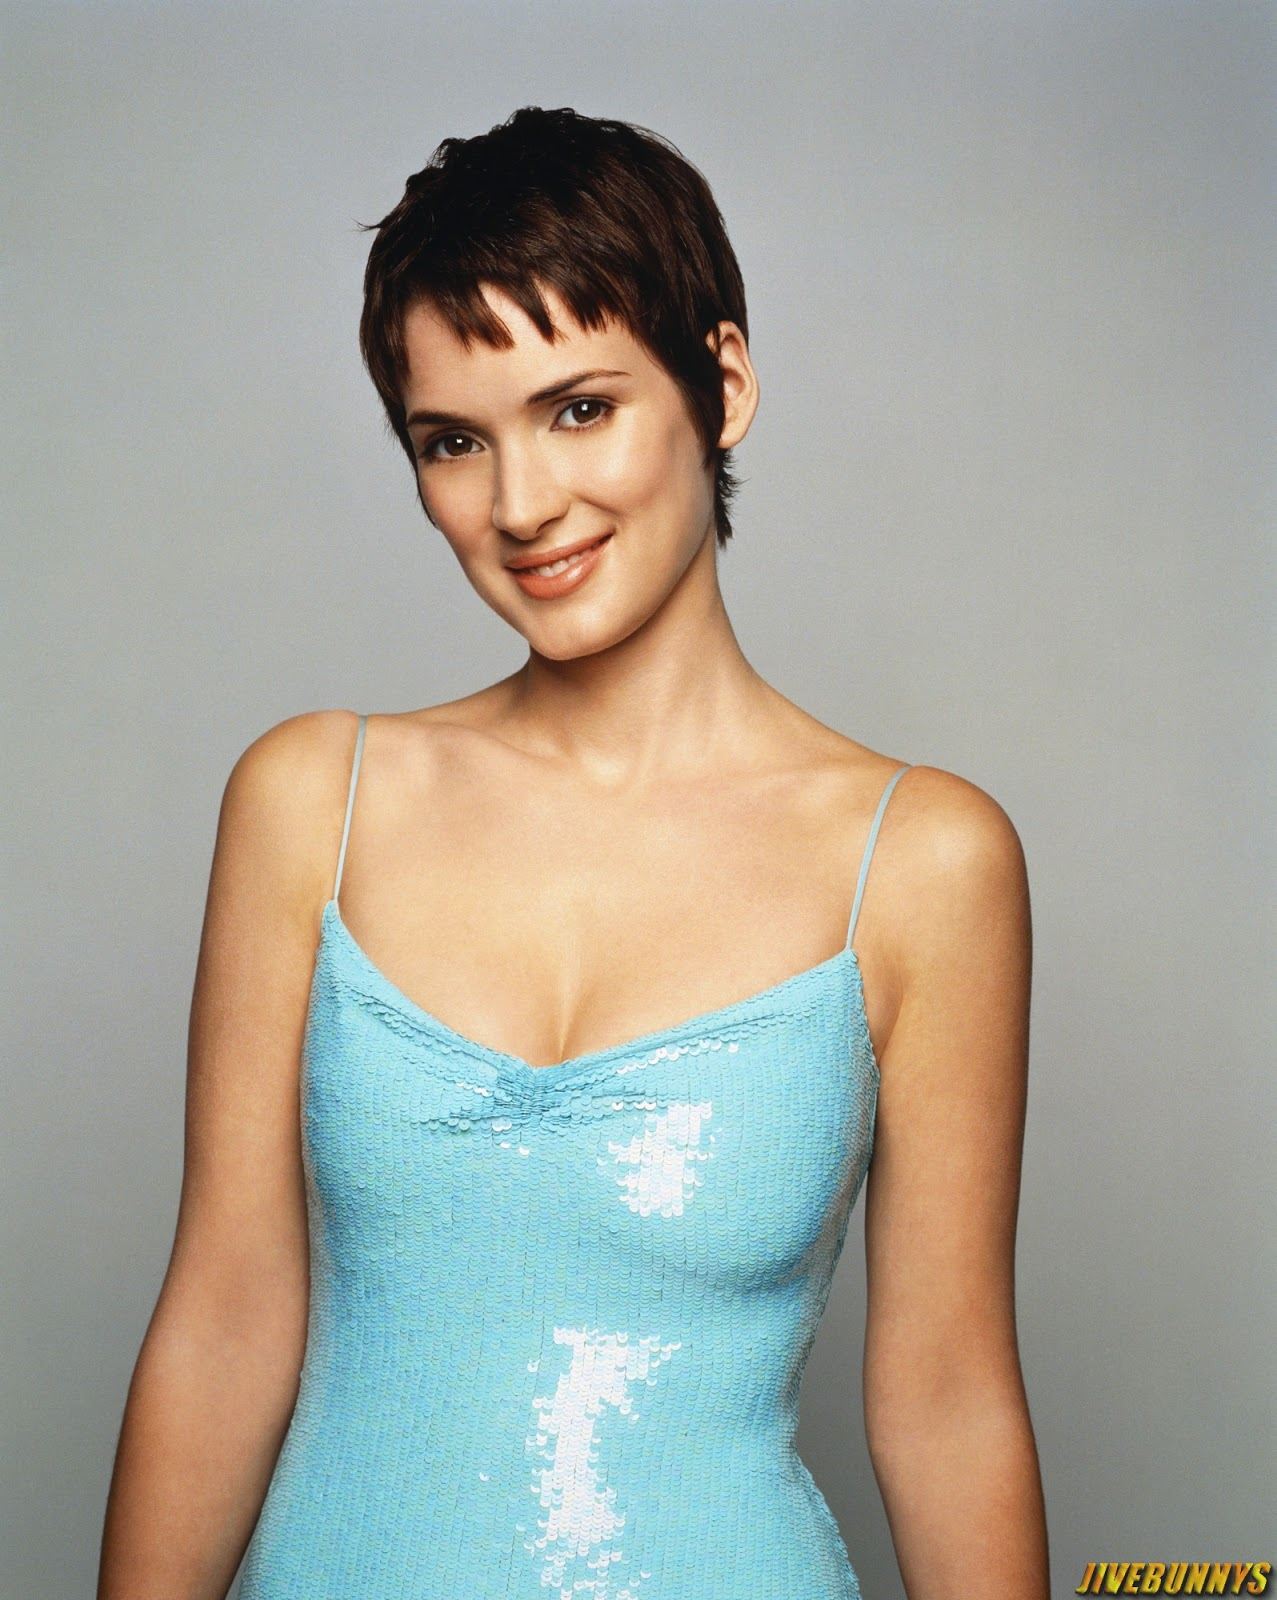 wynona black personals Winona ryder celebrity  winona ryder movies are watched and re-watched by her fans and winona ryder dating history is  winona ryder black swan was not an.